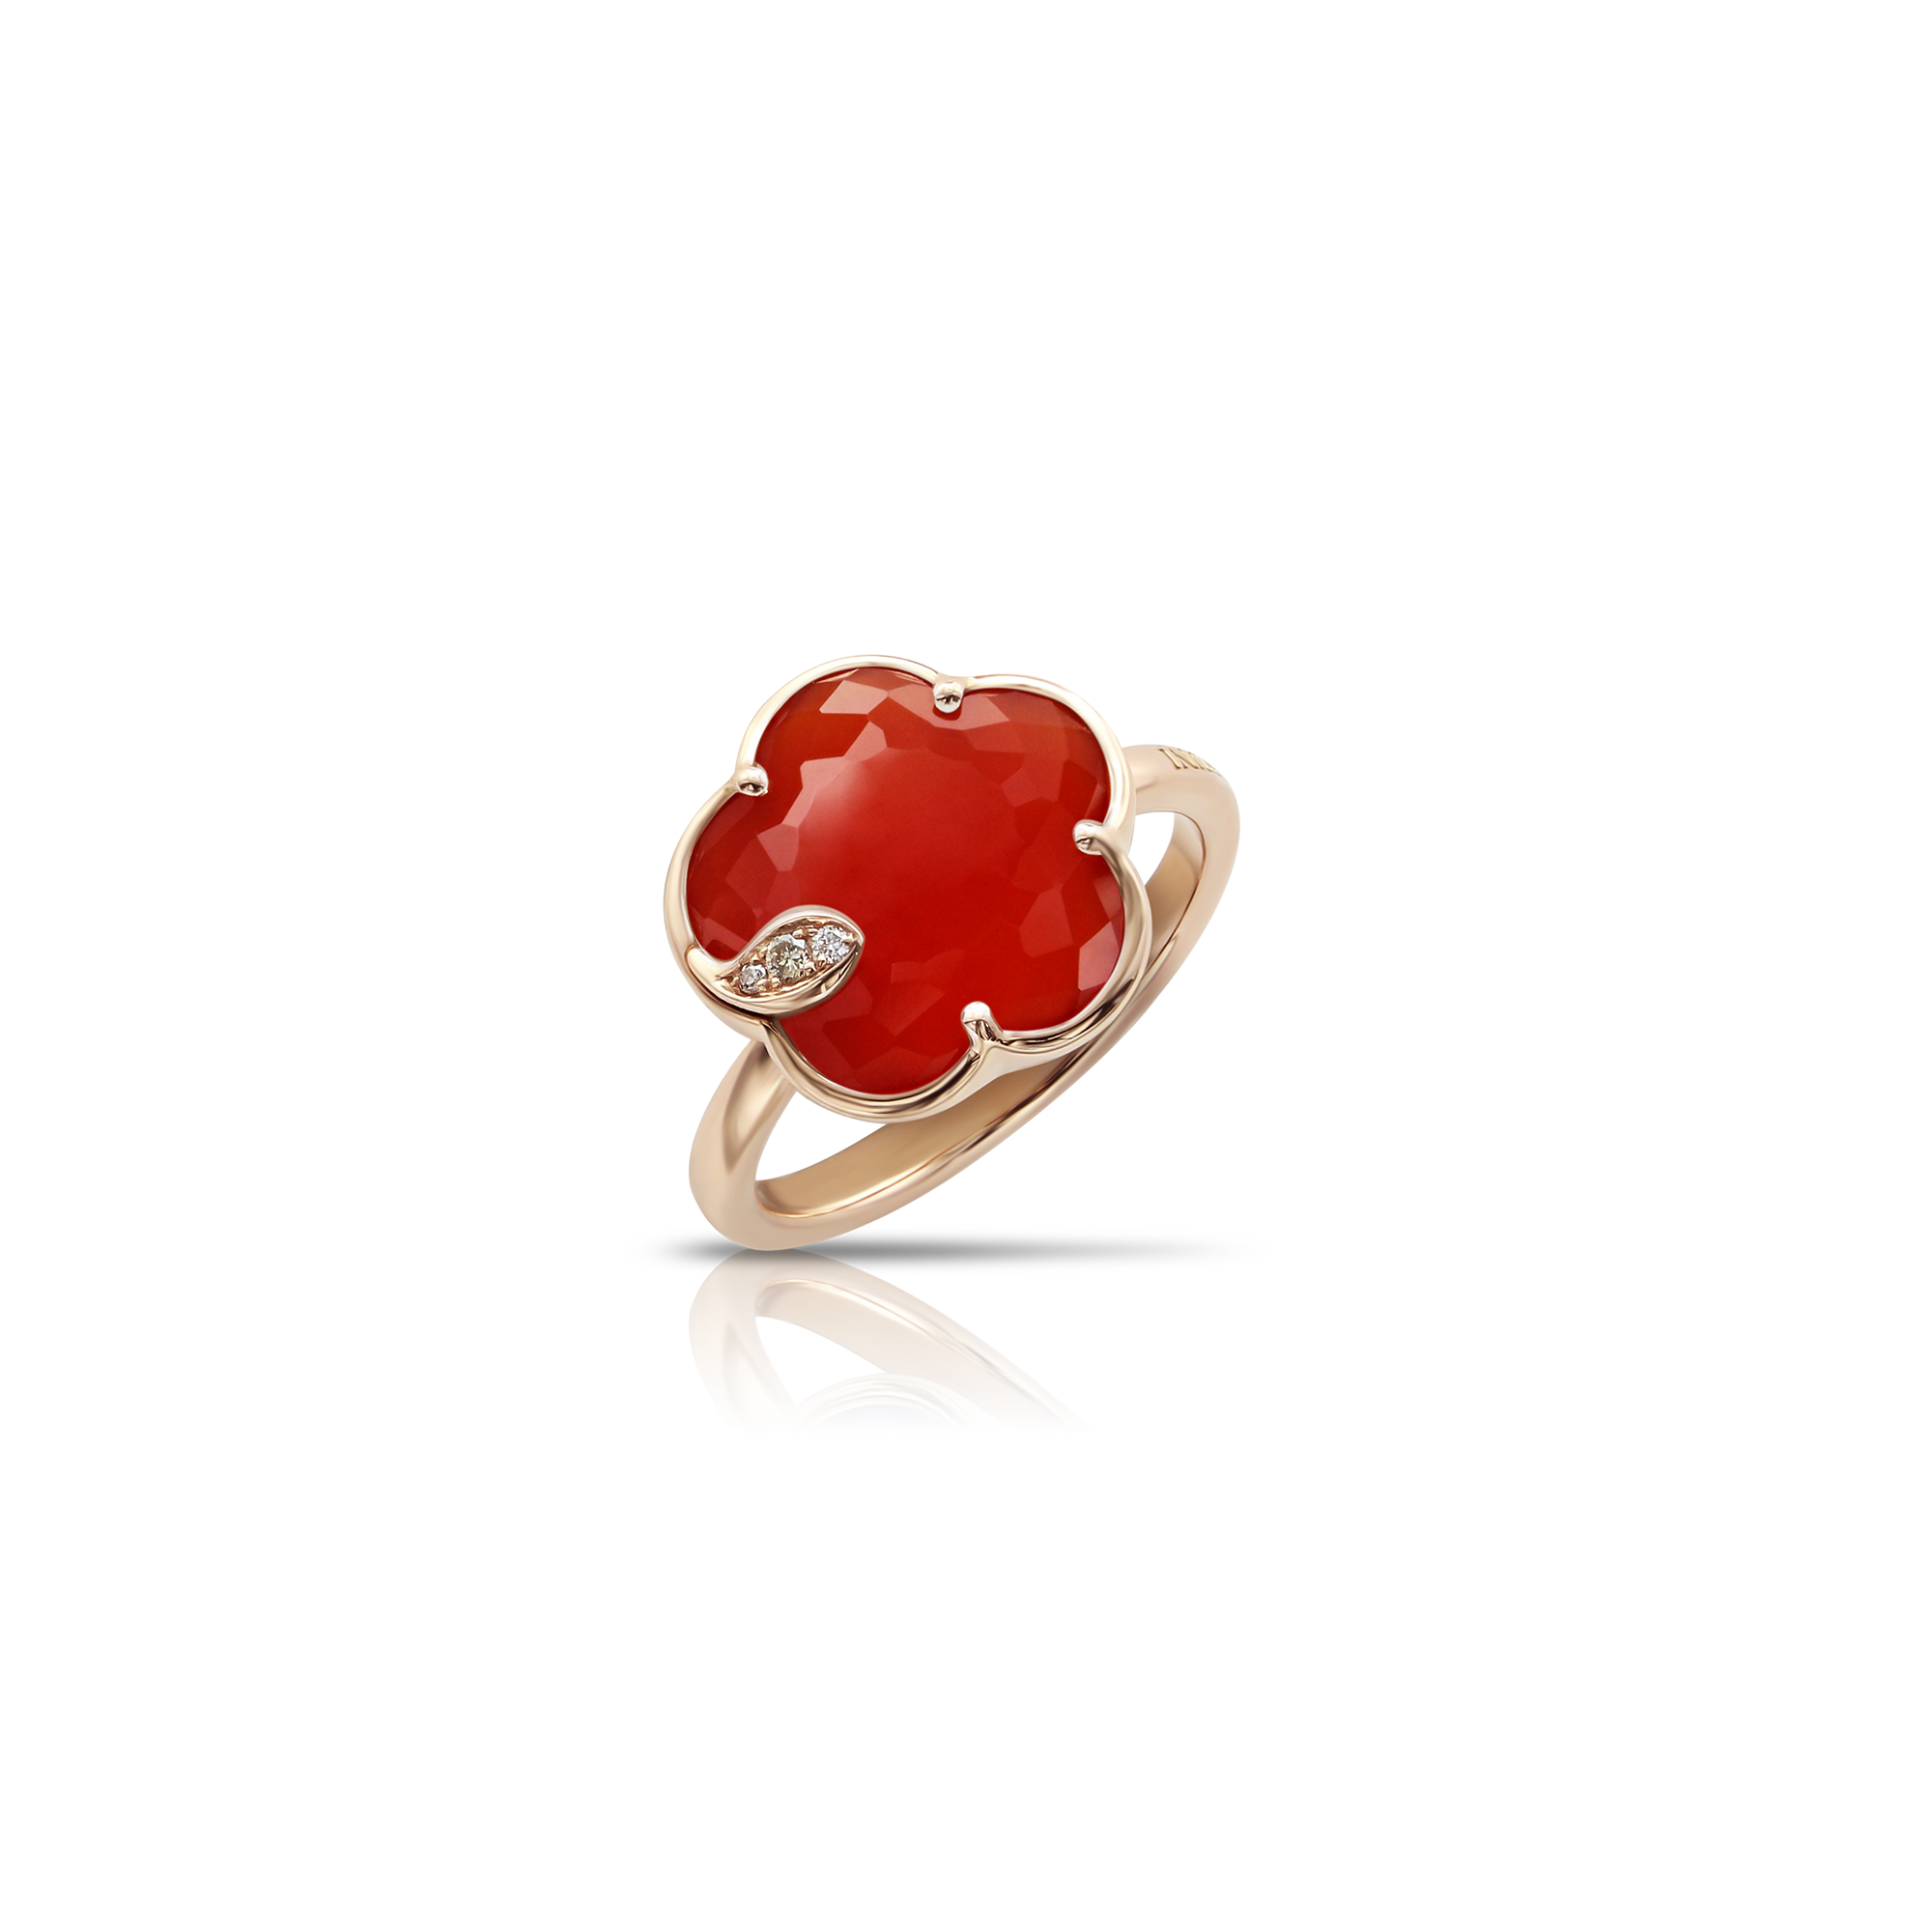 18k Rose Gold Petit Joli Ring with Red Carnelian, White and Champagne Diamonds